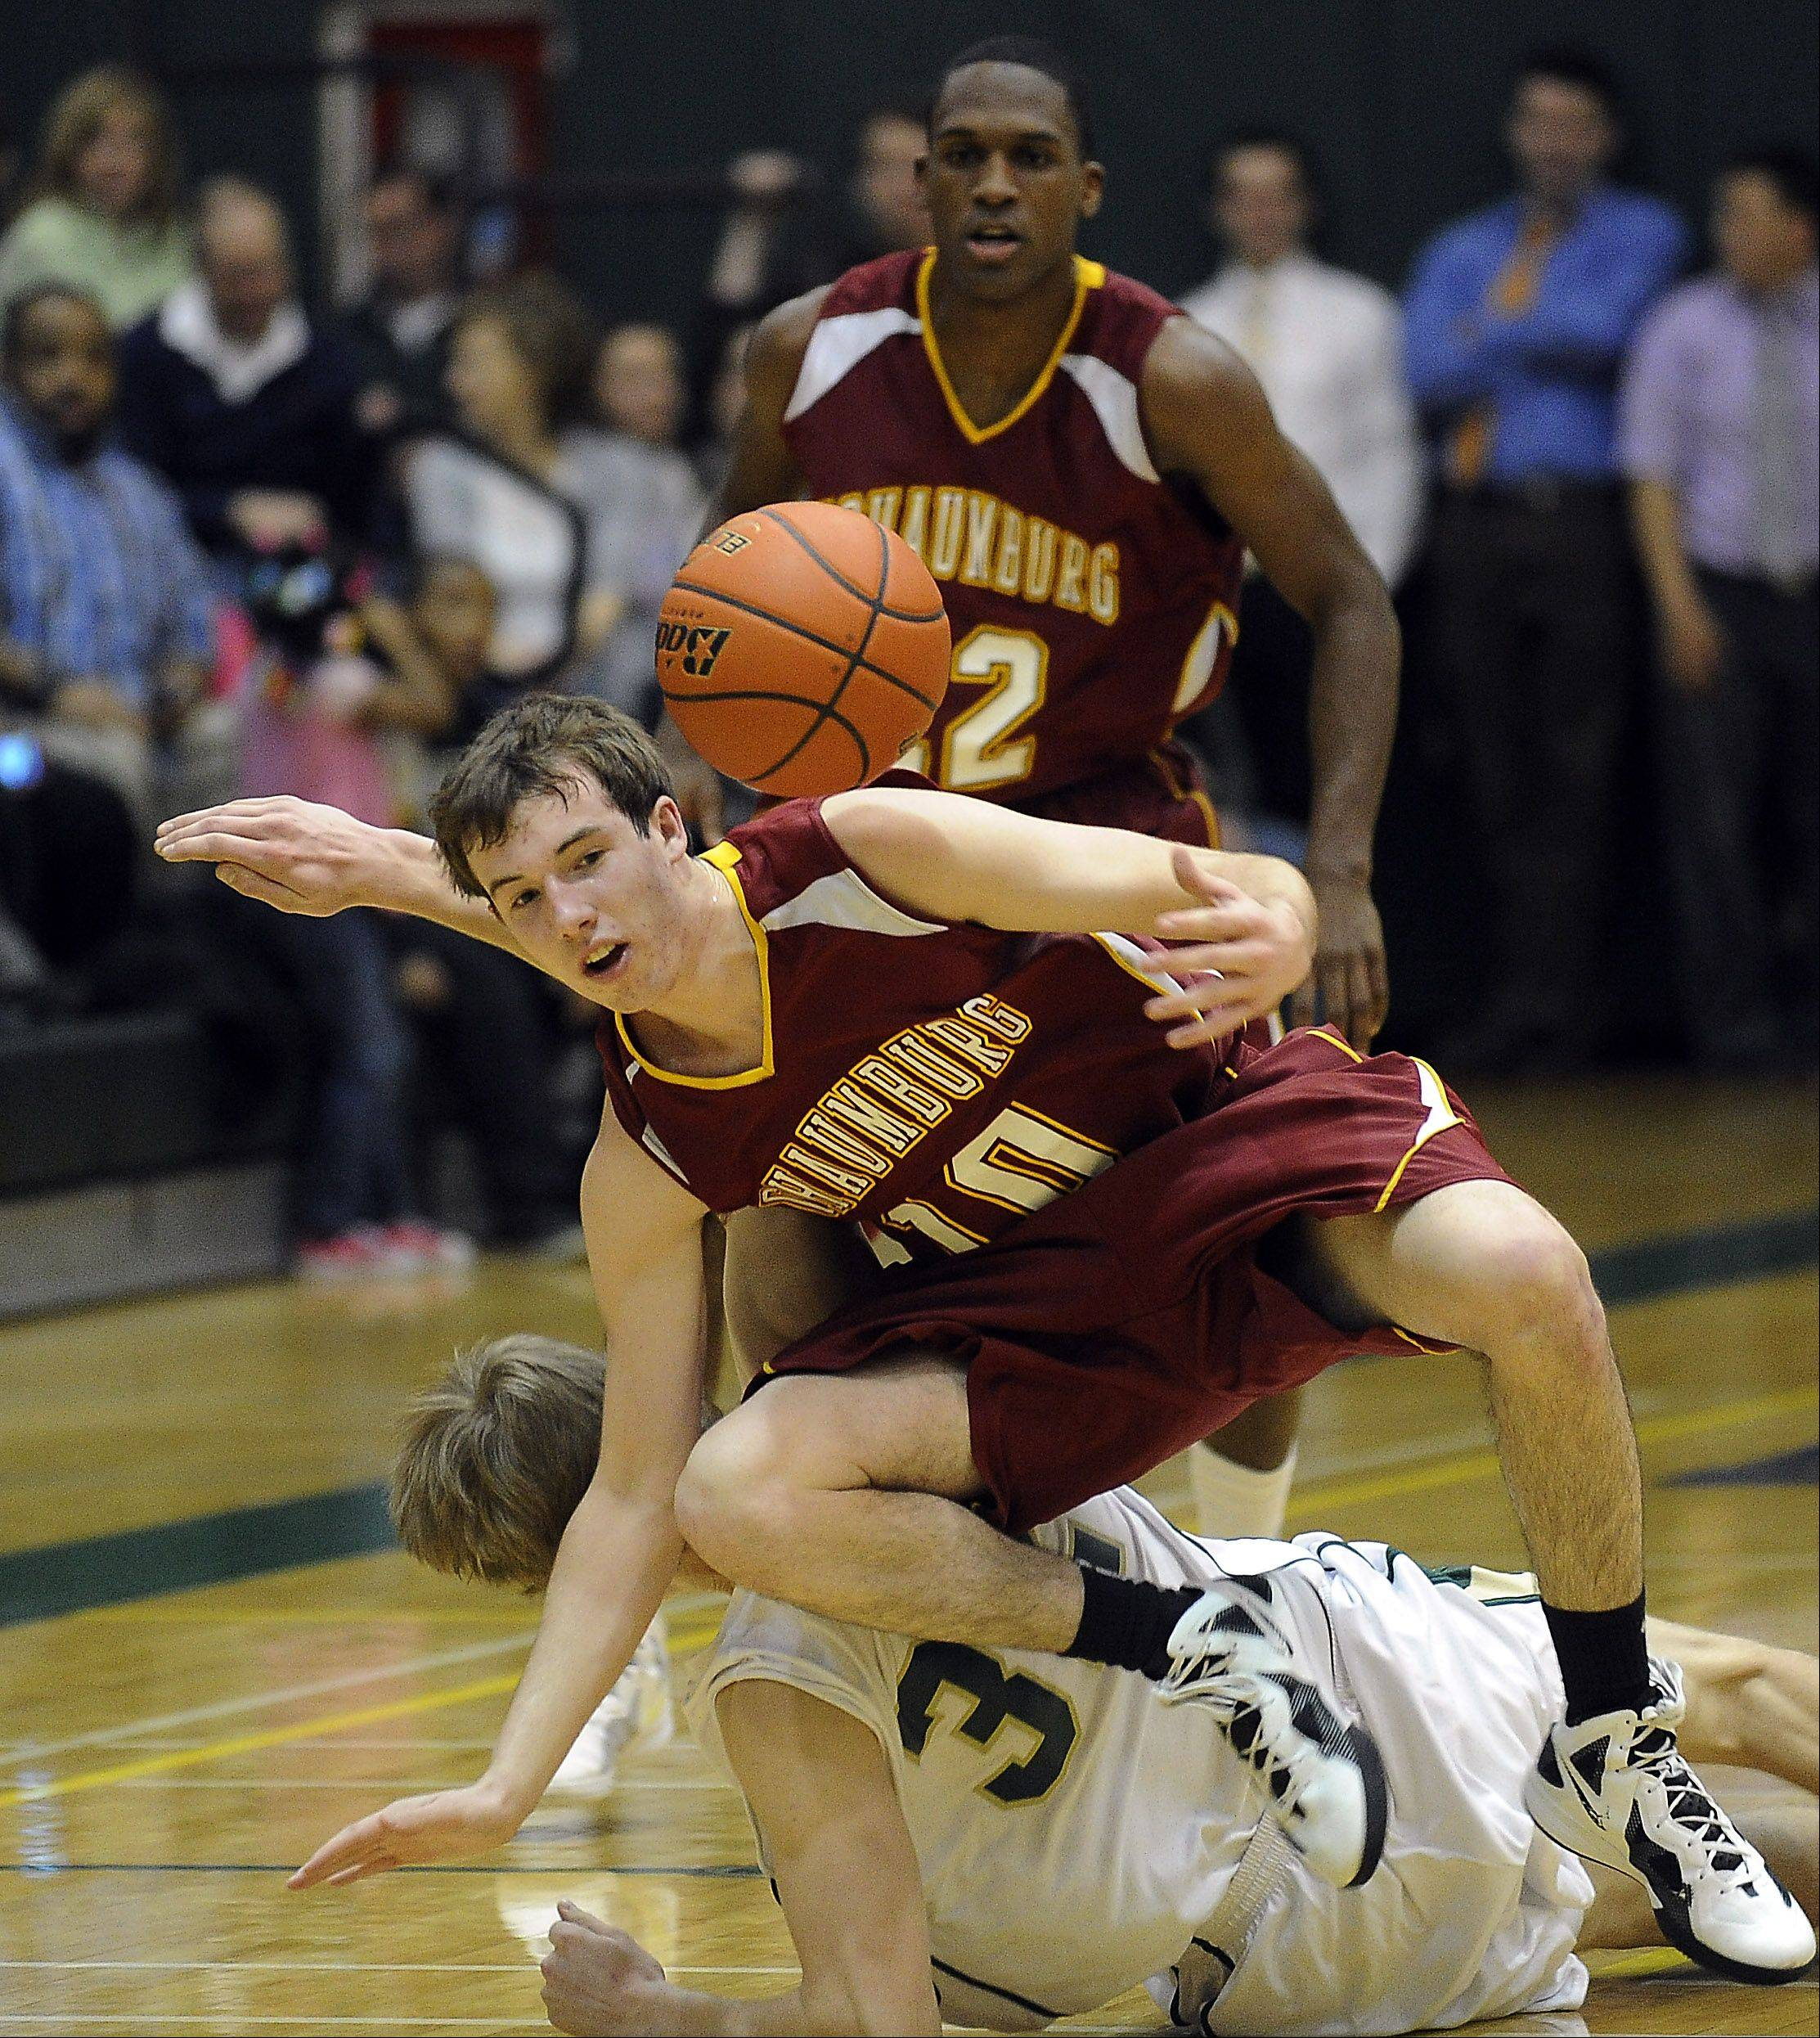 Schaumburg's Joey Faleni and Fremd's Nate Serviss battle for a loose ball in the first half.